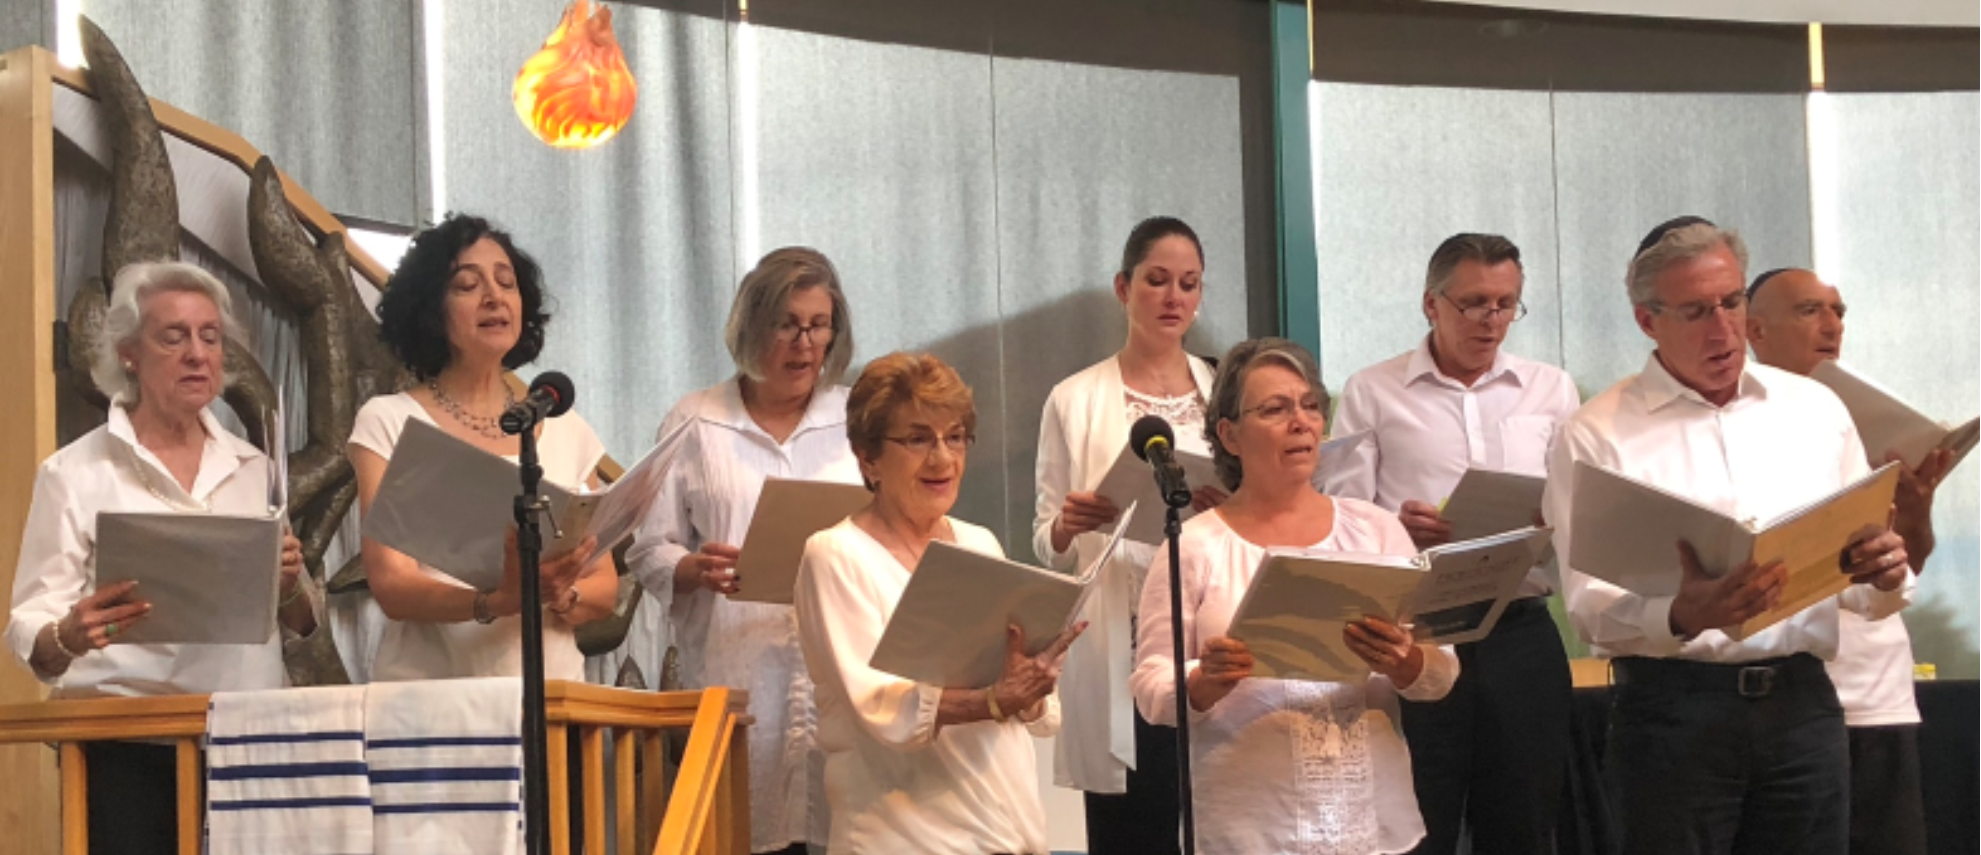 Our Beautiful Shalom Singers